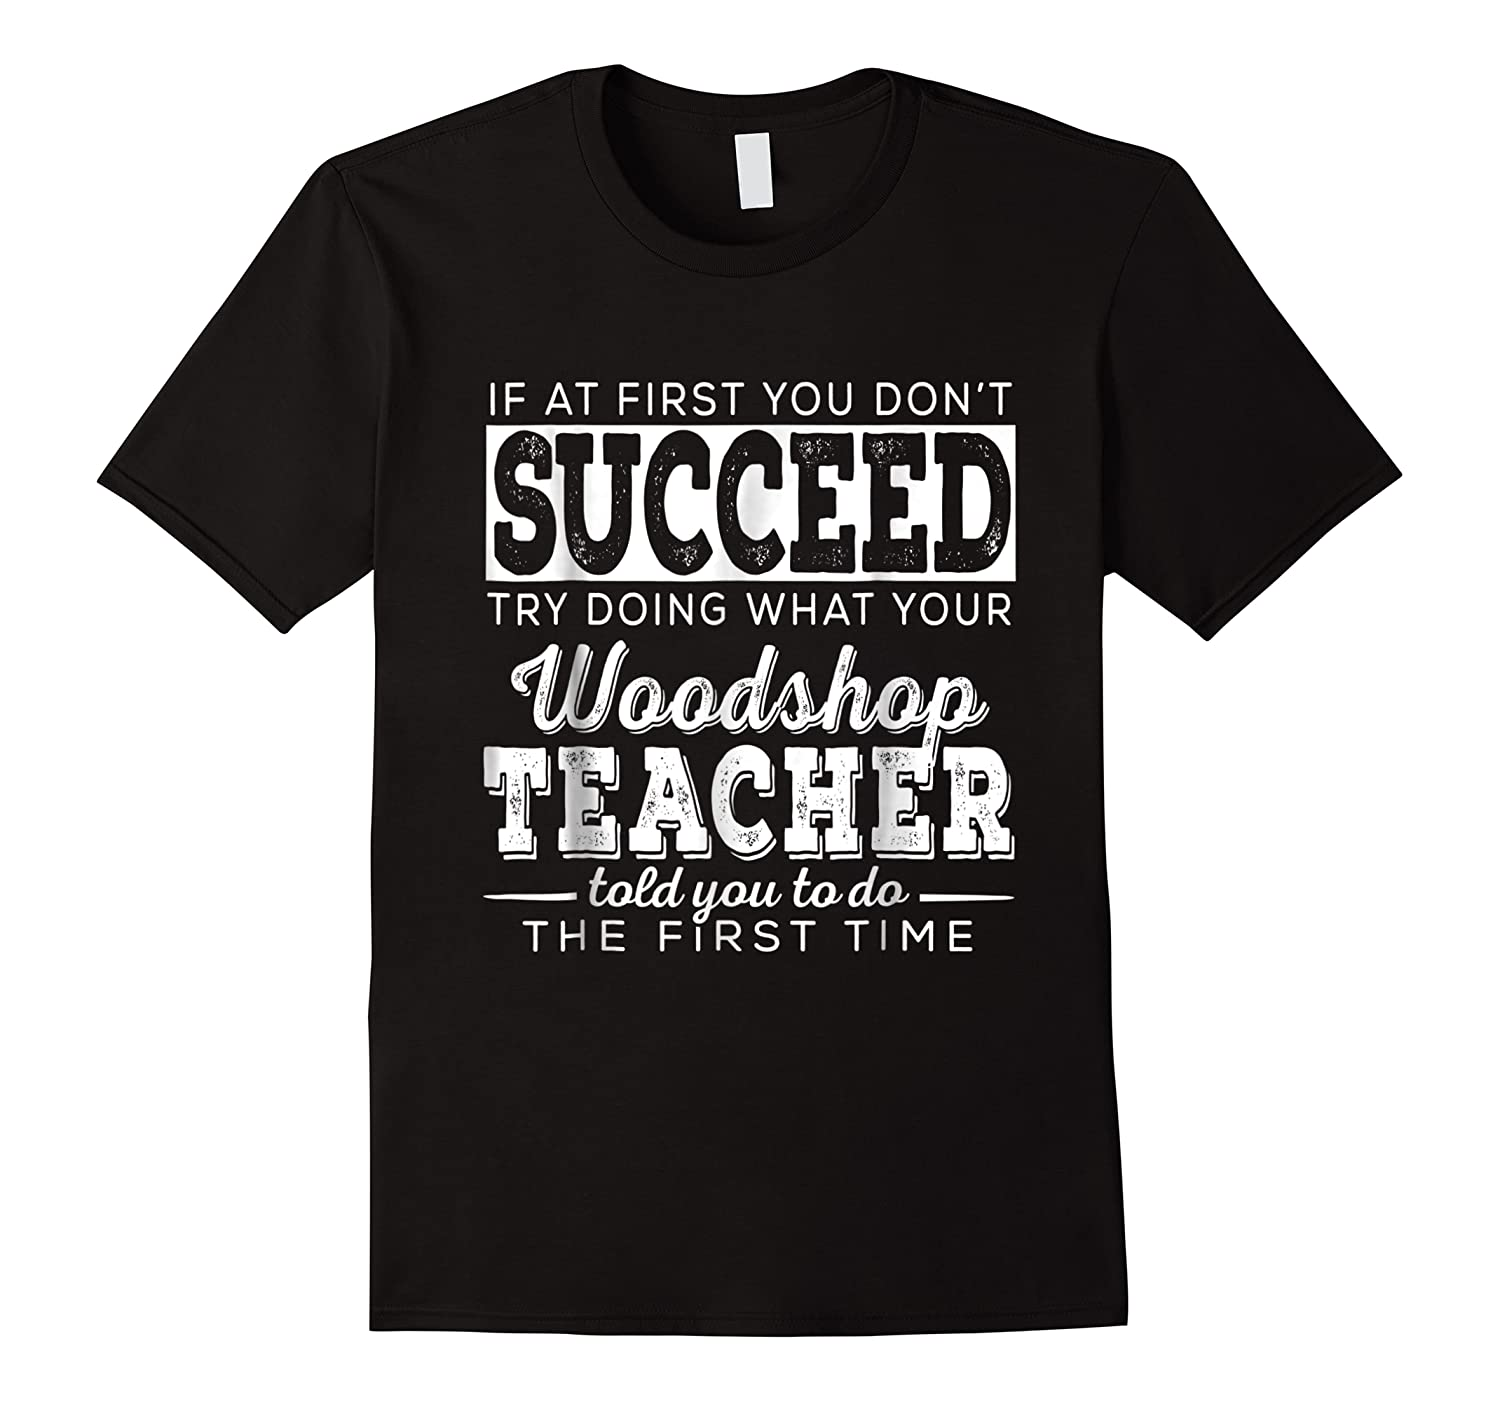 Best Woodshop Tea If At First You Don't Succeed Shirts